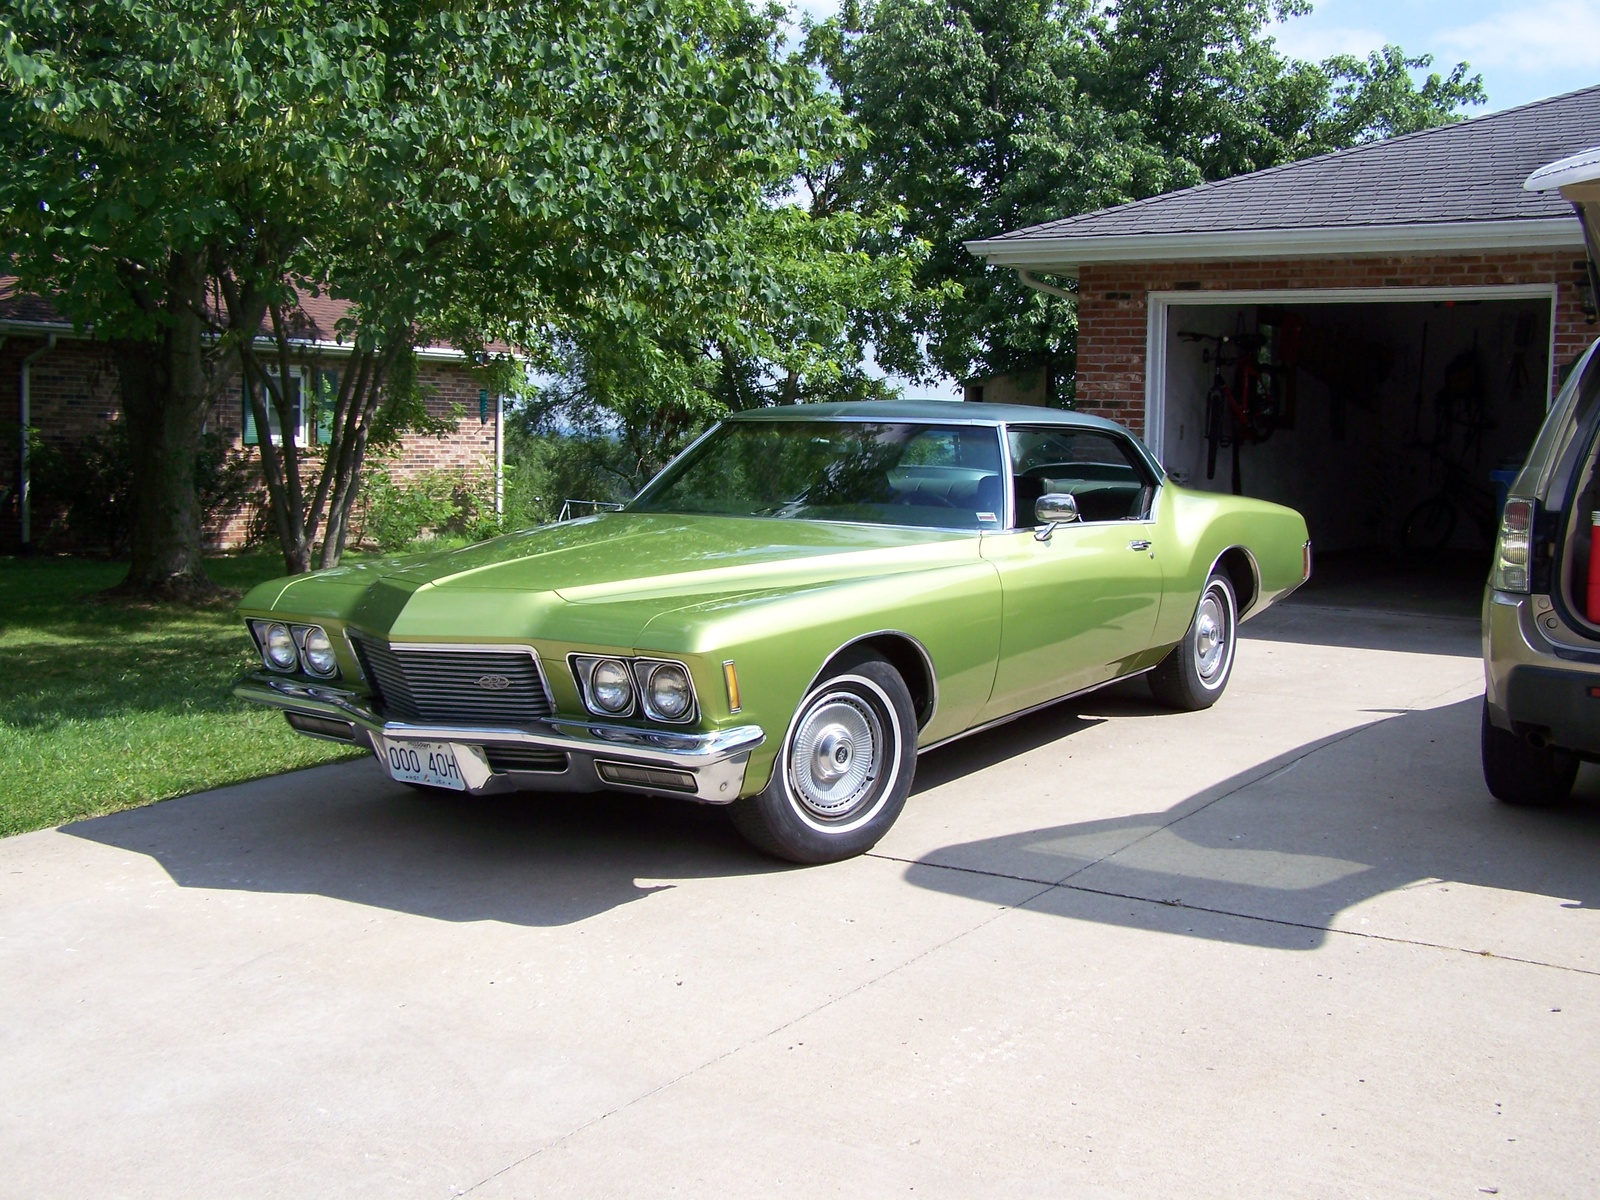 1971 Buick Riviera For Sale Craigslist 1971 Buick Riviera